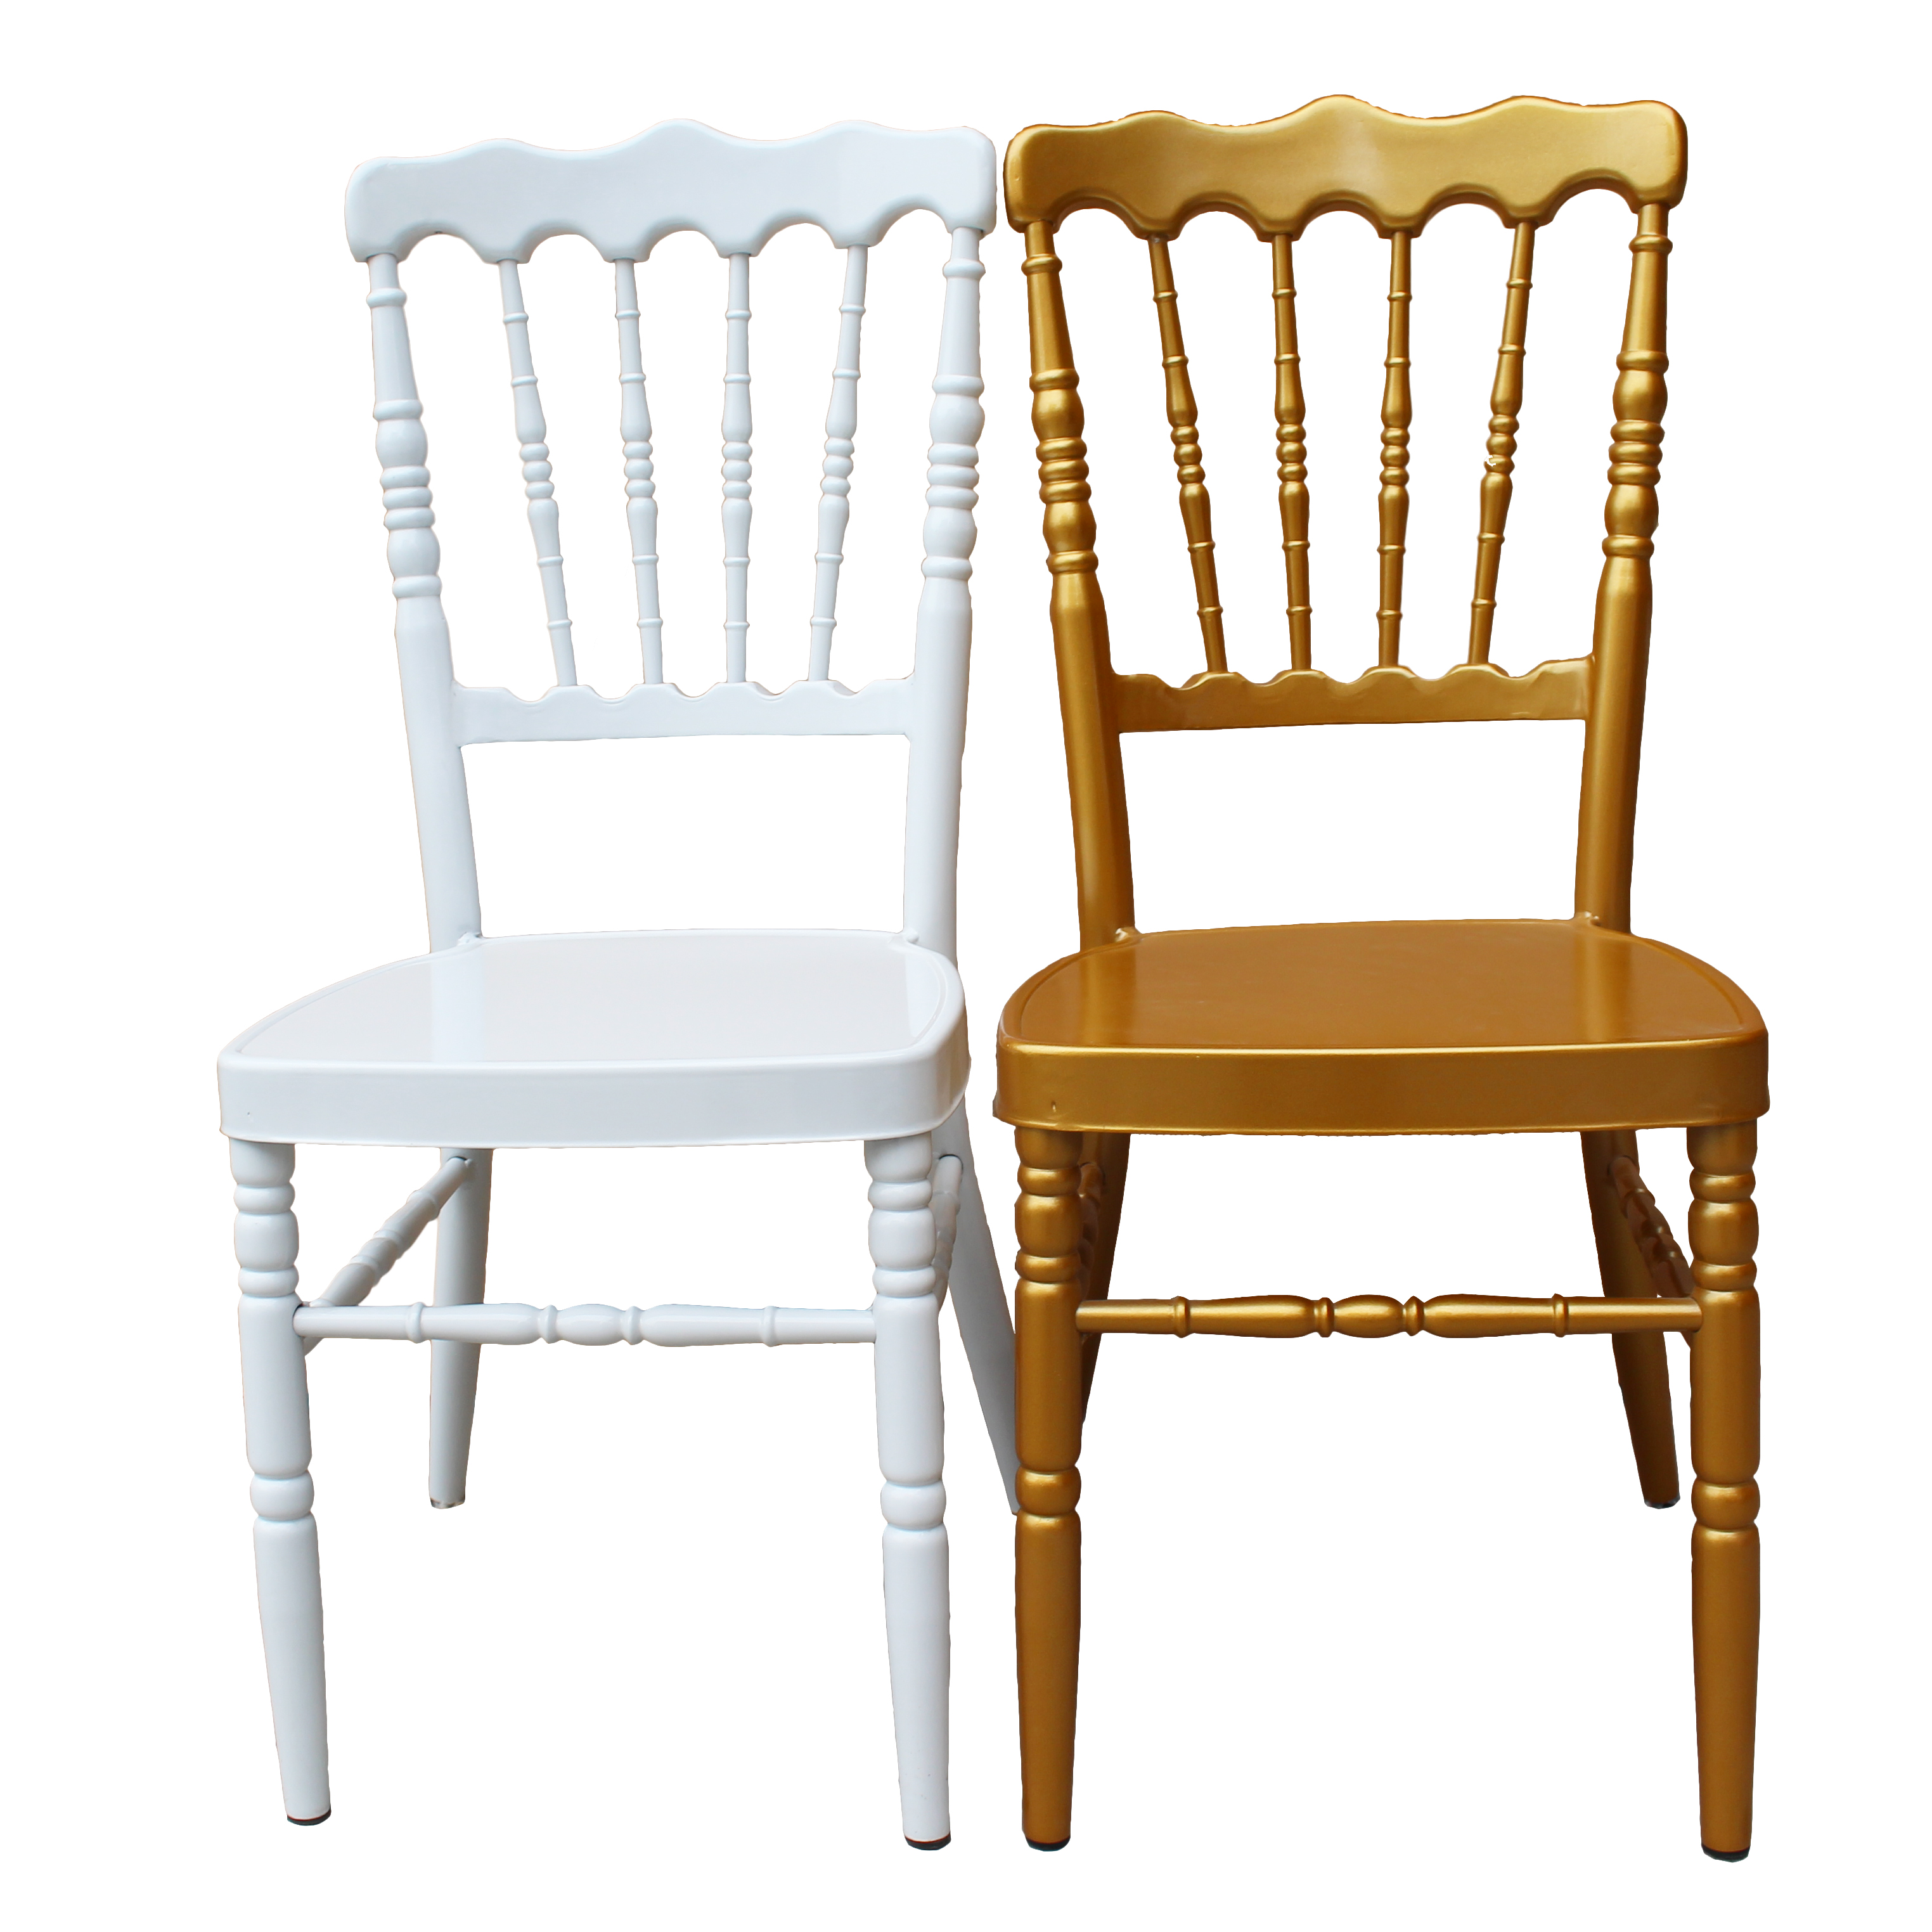 fancy banquet furniture white modern tiffany iron napoleon dinning chairs for sale with cushion for restaurant